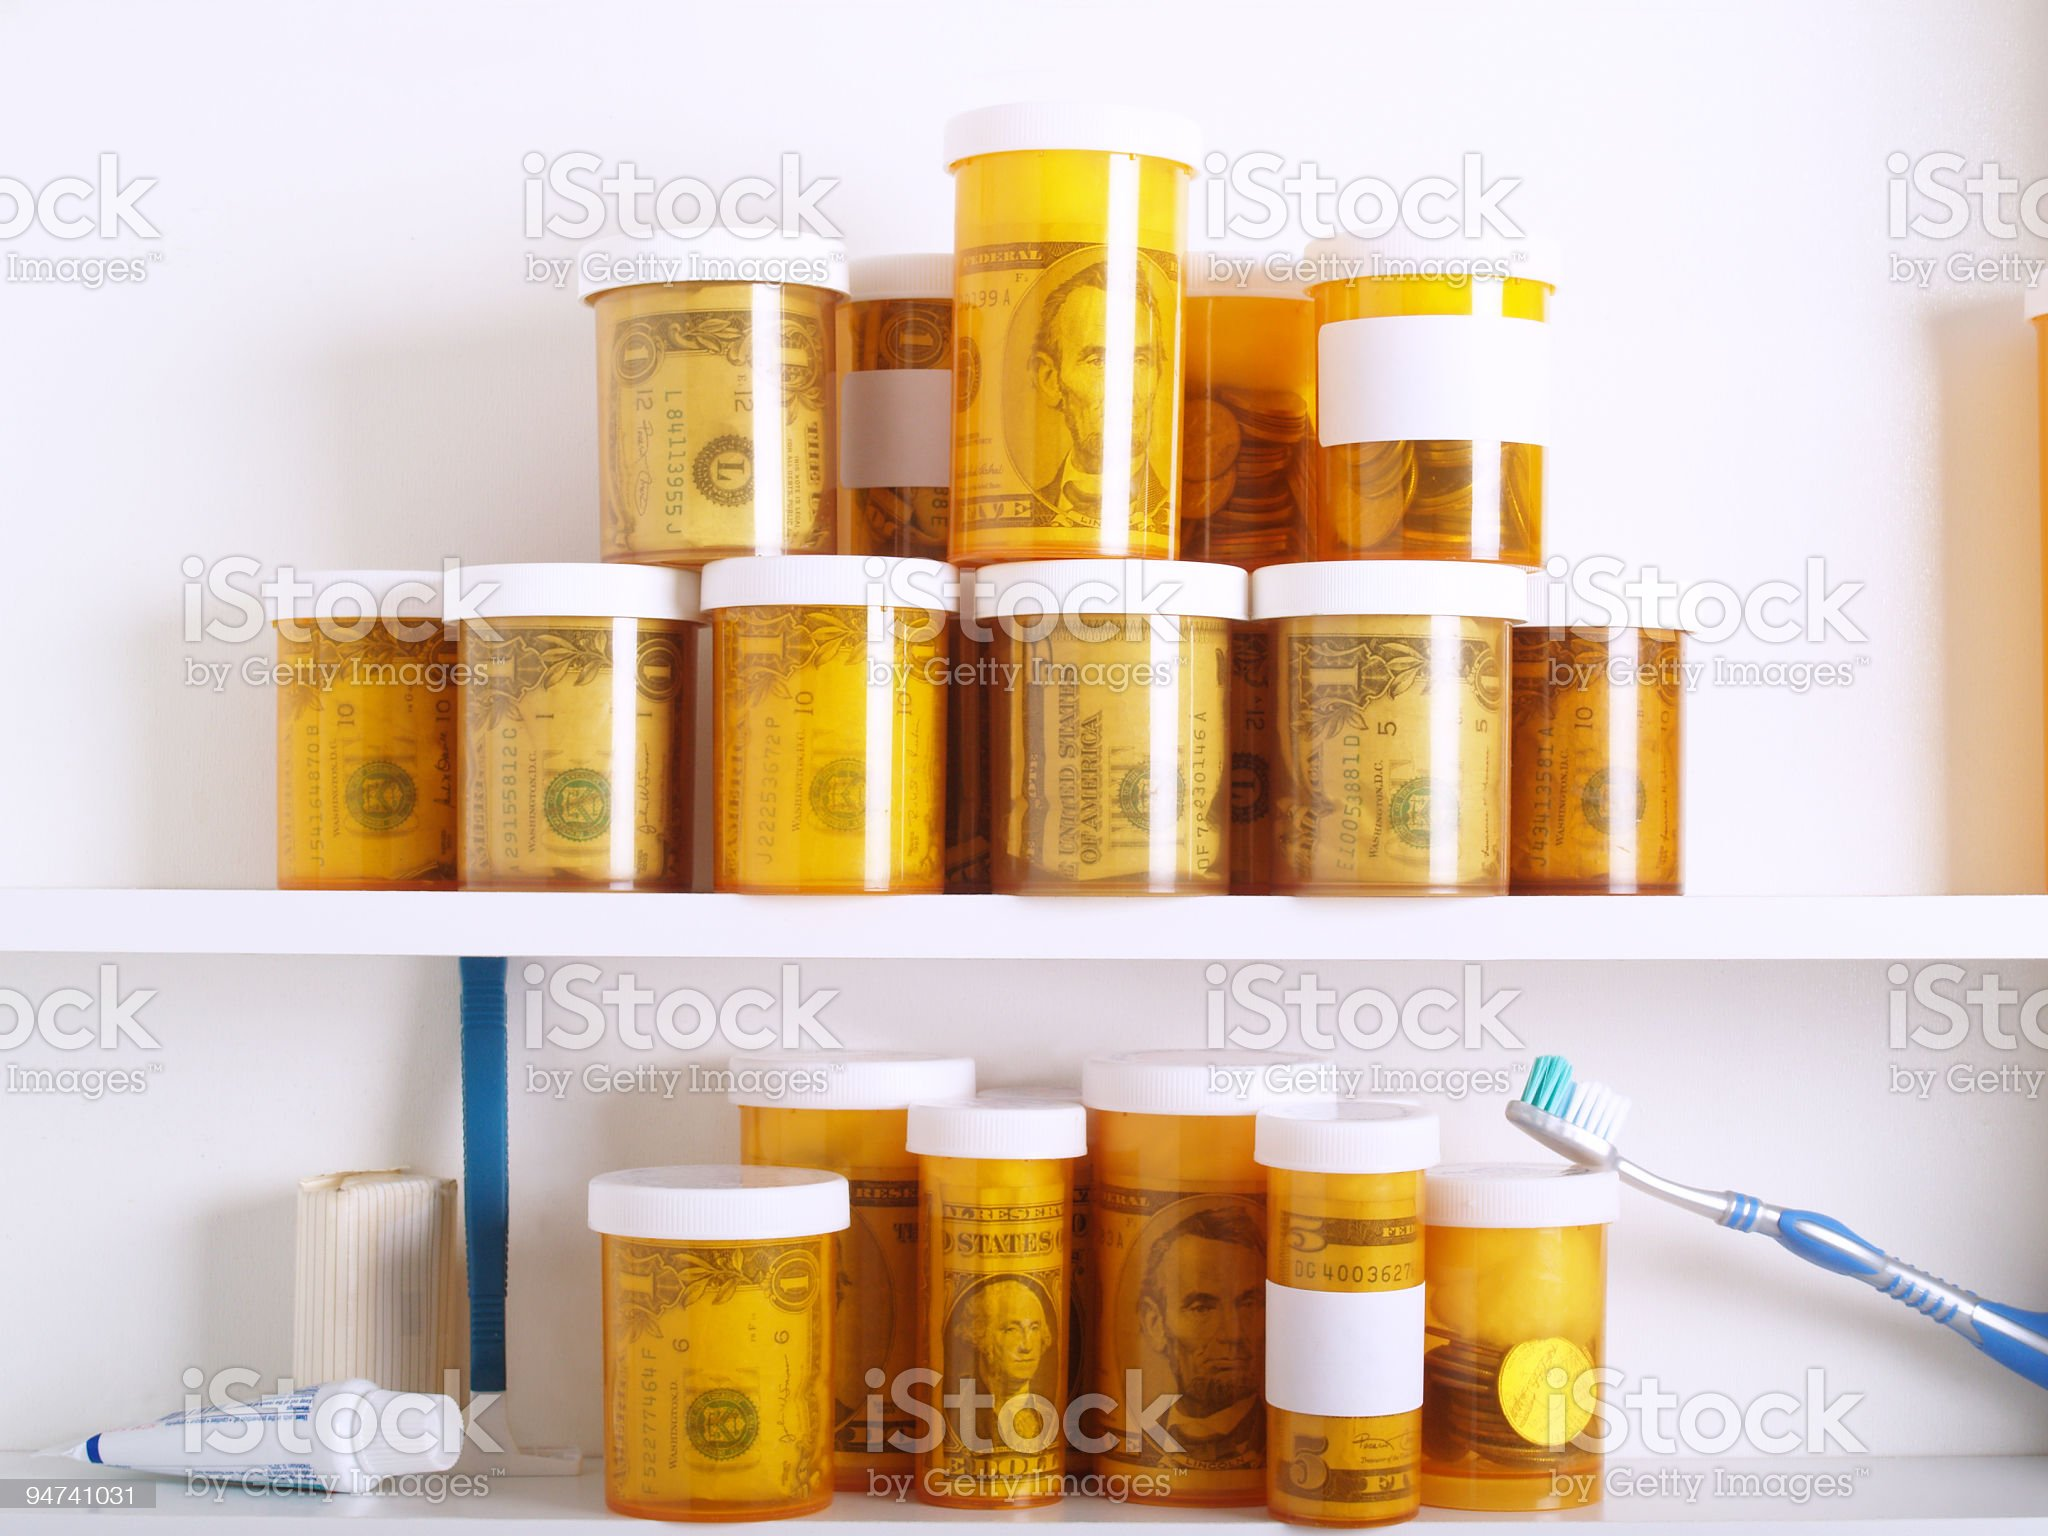 Money in Pharmaceuticals royalty-free stock photo